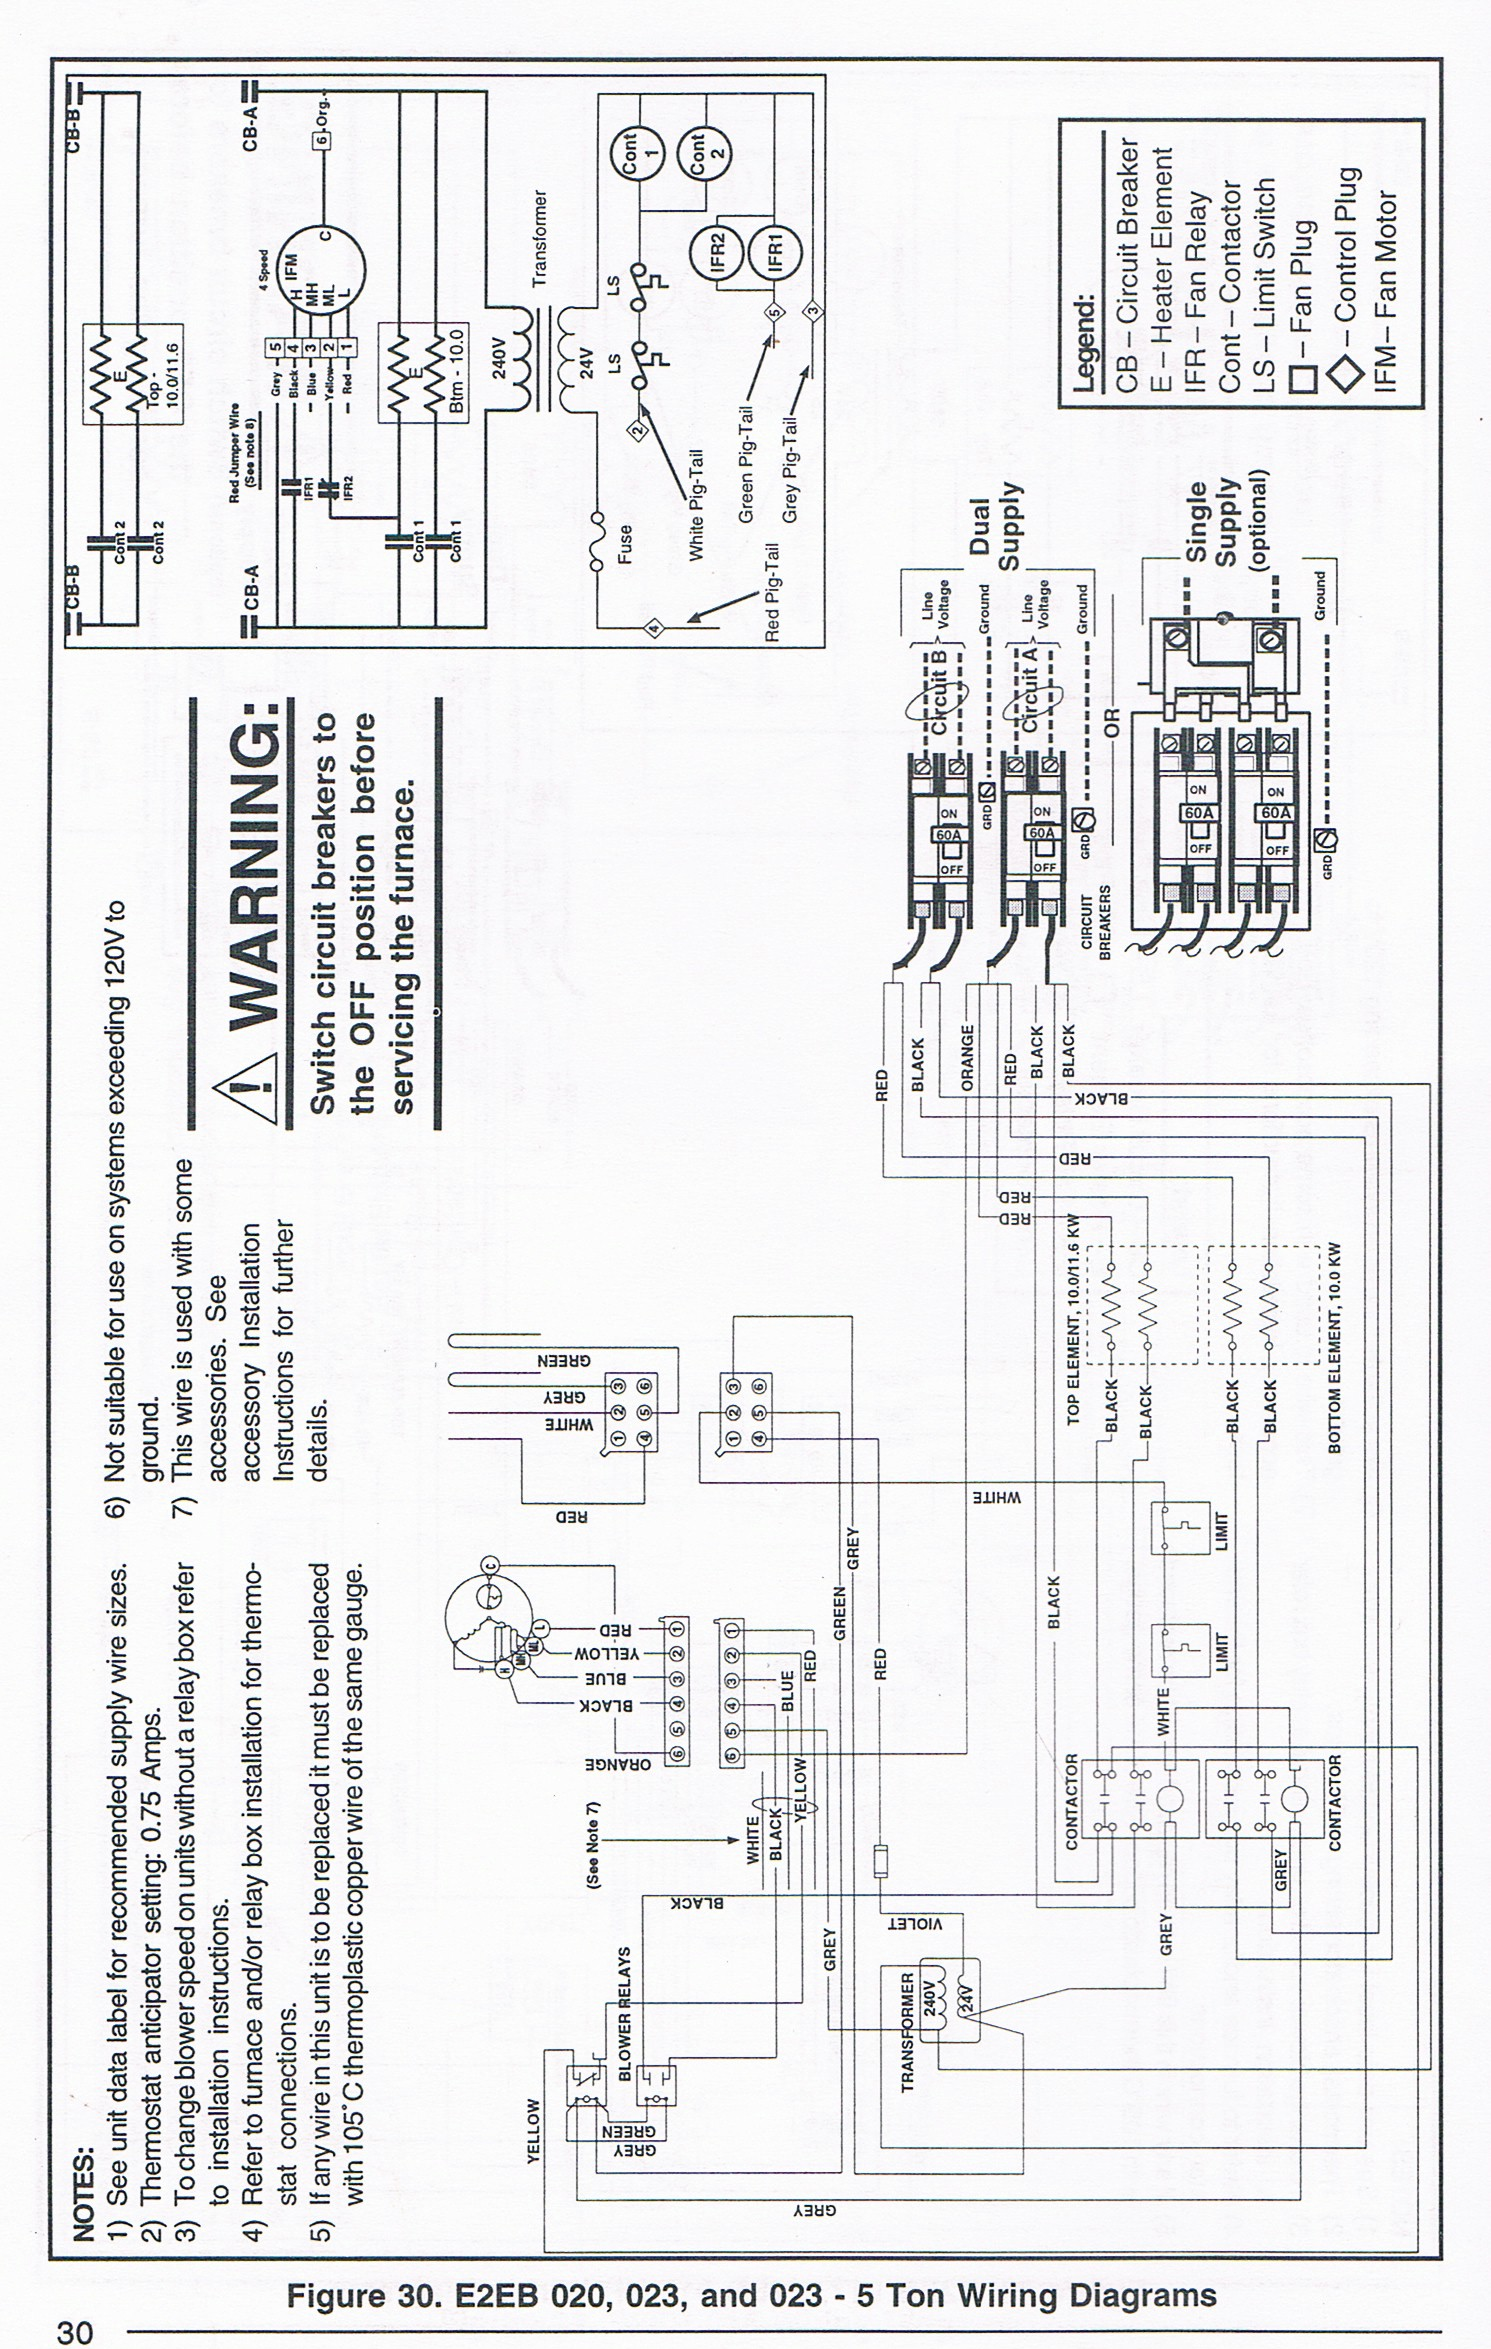 2011 05 04_234443_e2eb nordyne electric furnace wiring diagram wirdig readingrat net Intertherm E2EB 015Ha Manual at gsmx.co